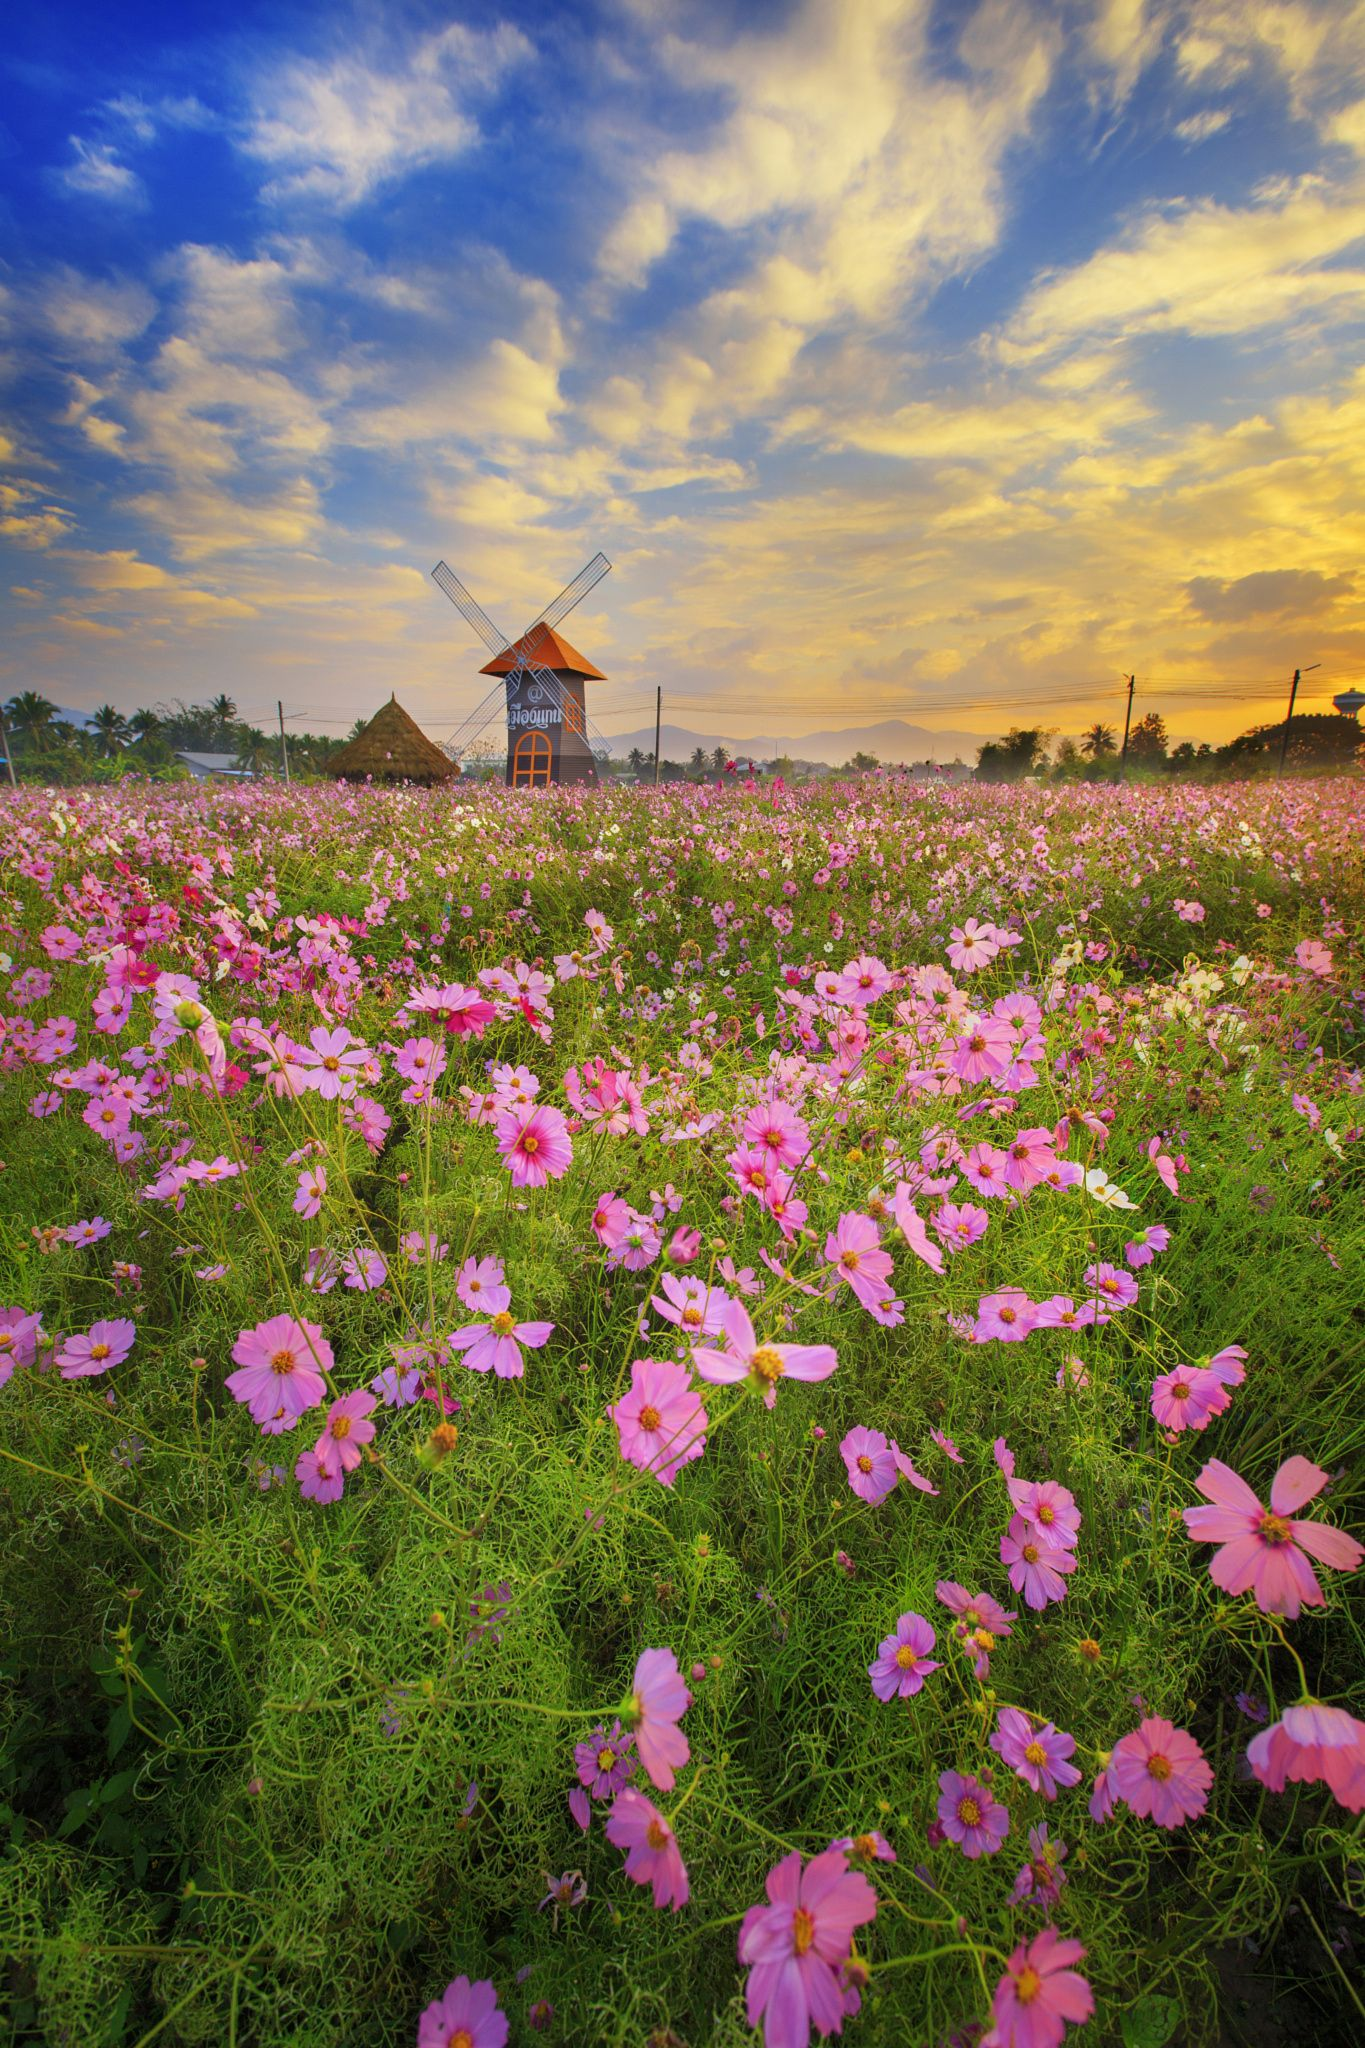 Cosmos Field Cosmos Flowers Flower Field Nature